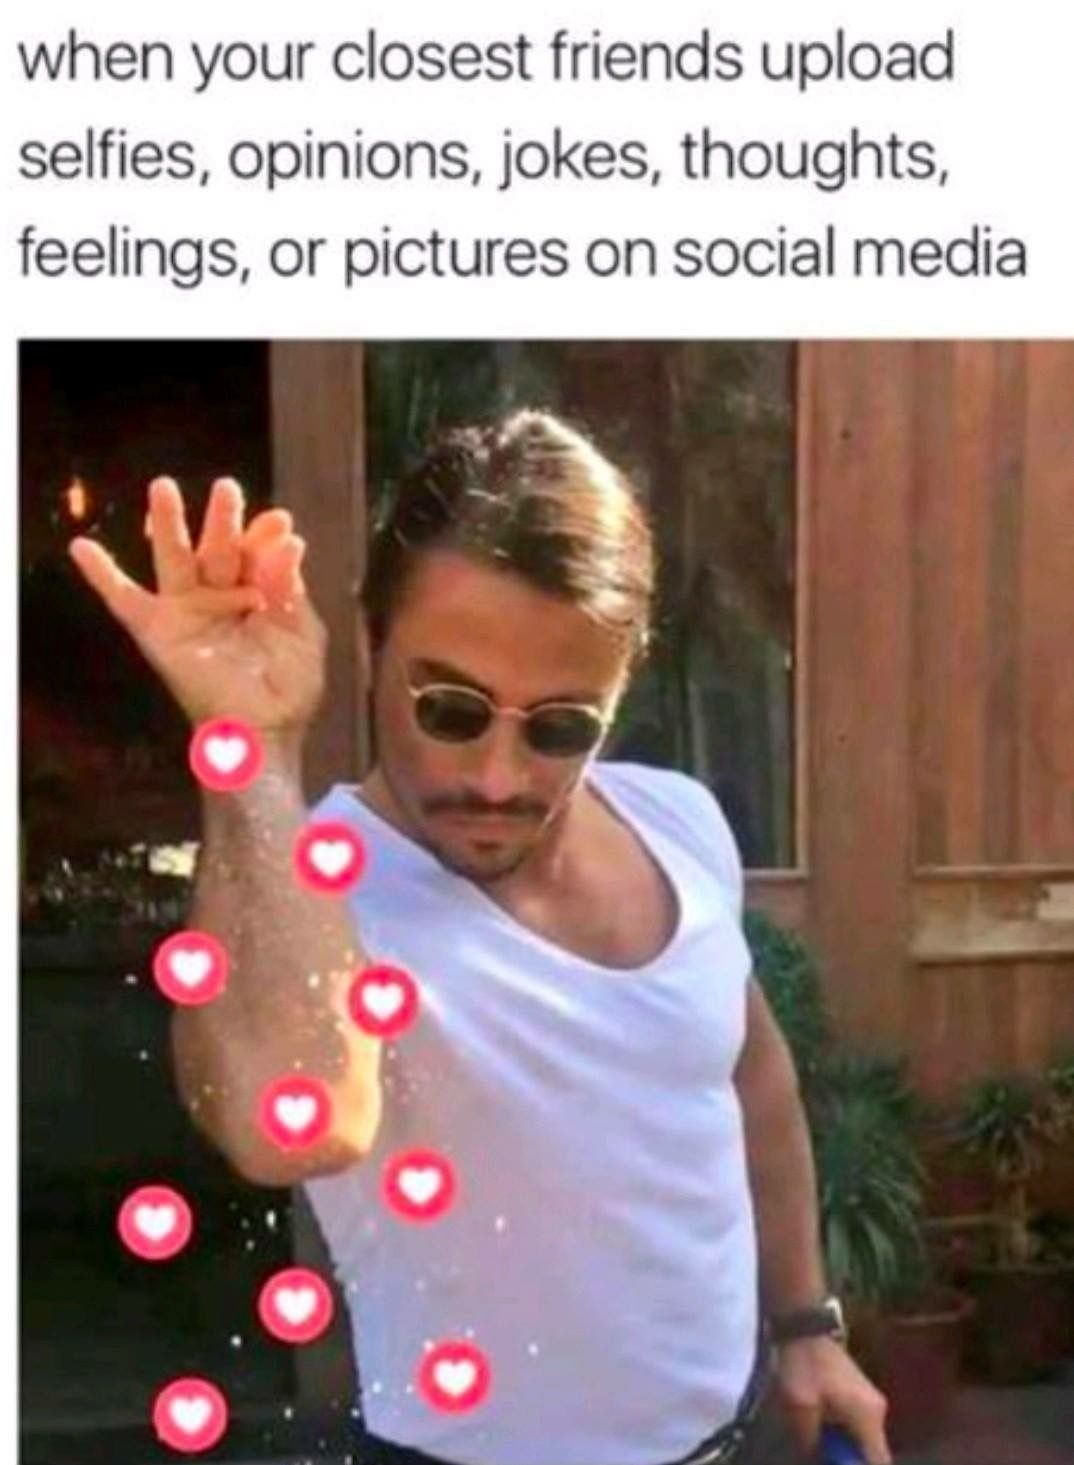 Pin By Naz On Funny Wholesome Memes Love You Friend Funny Quotes Sarcasm